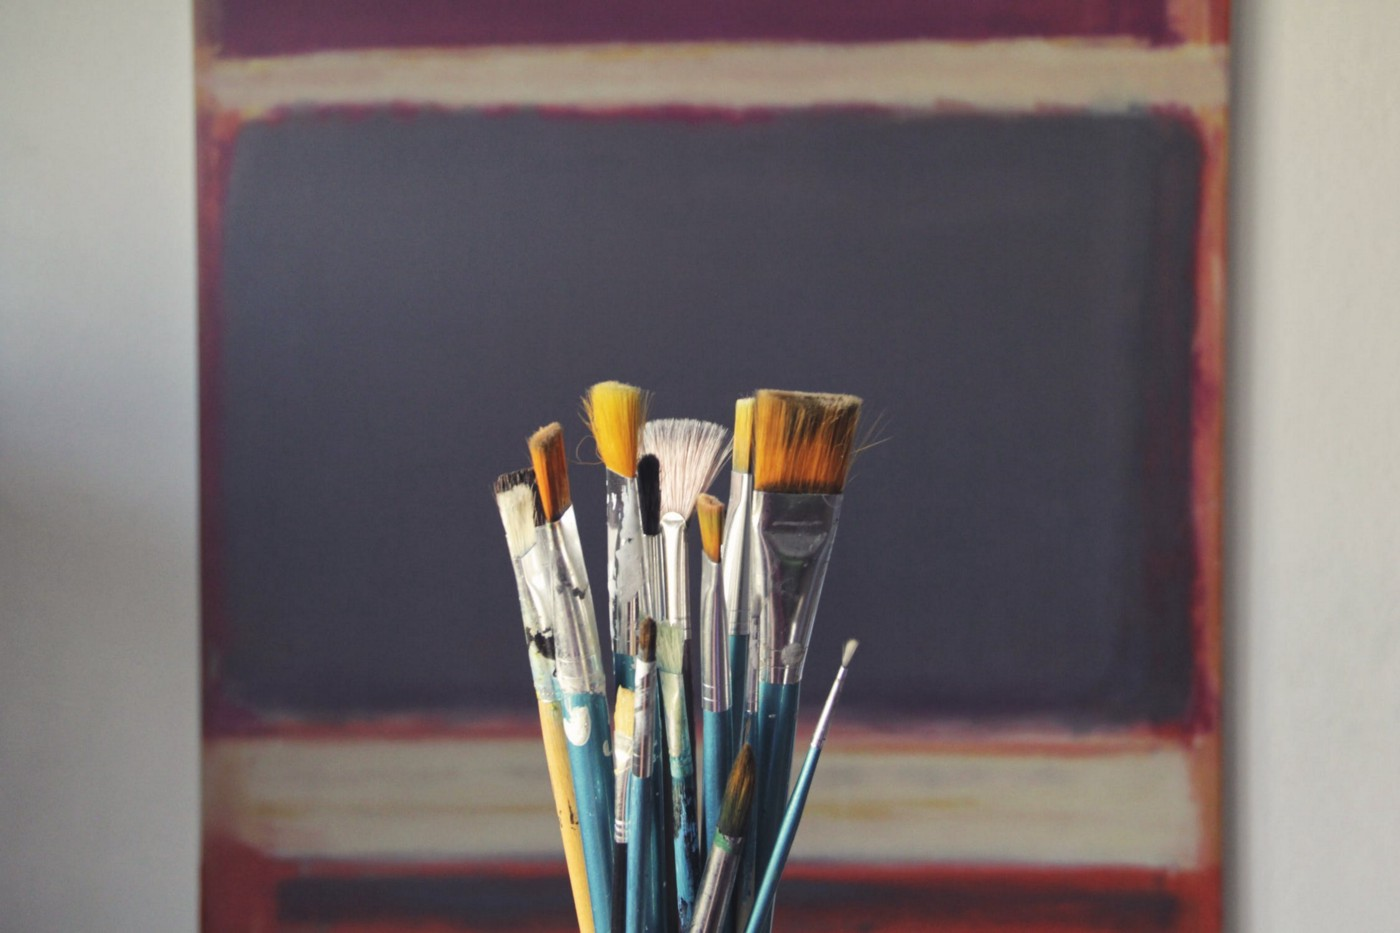 Paintbrushes in a jar in front of an abstract painting.